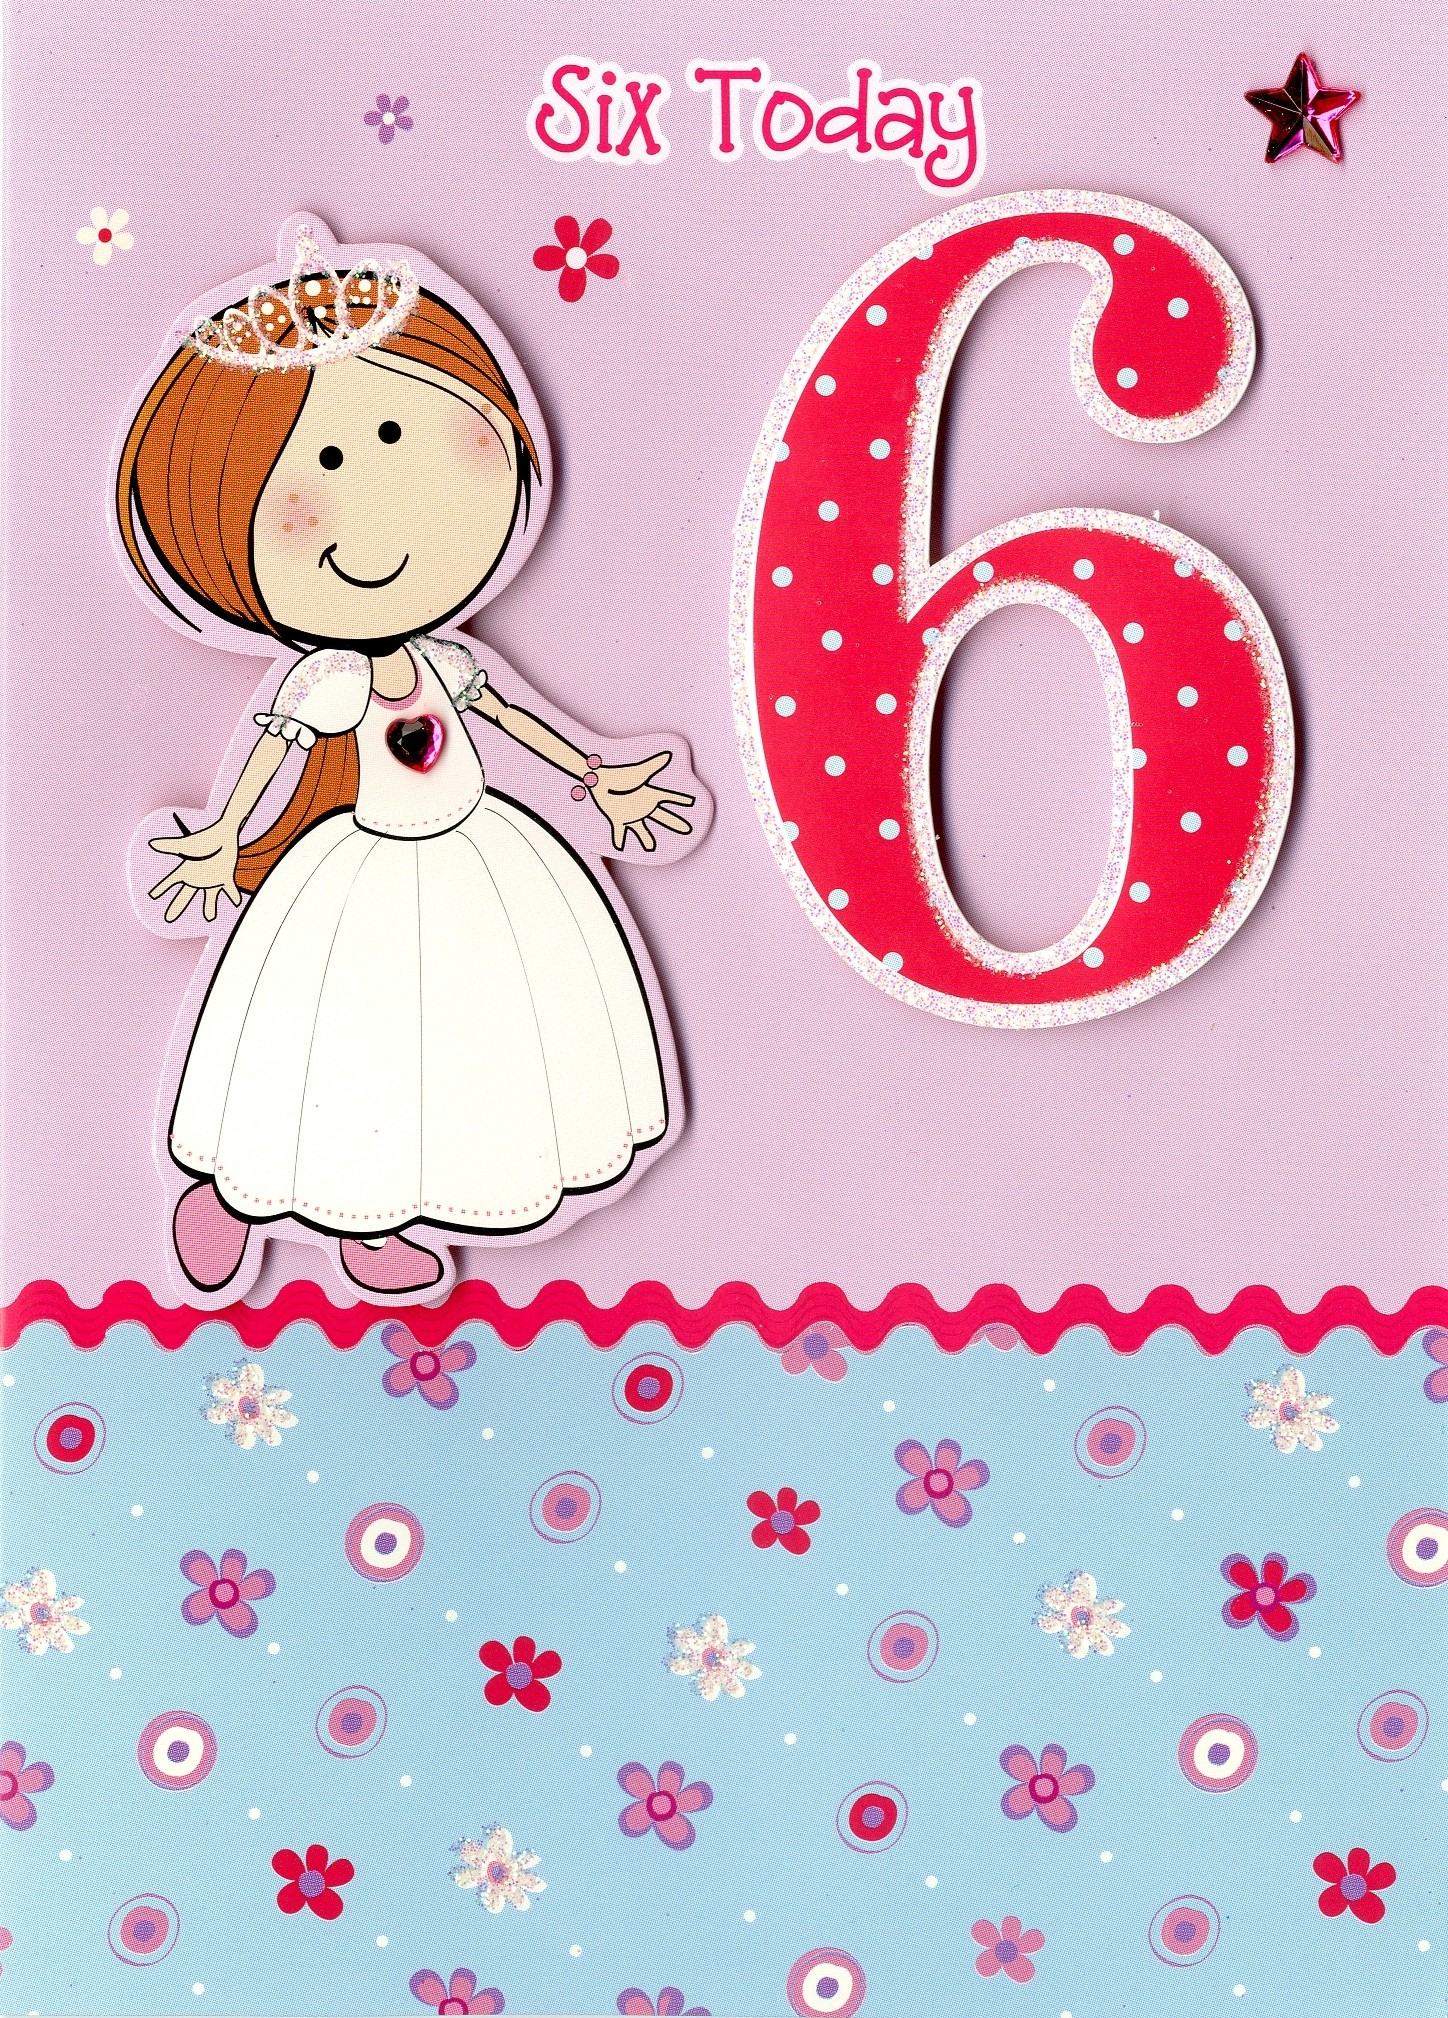 Birthday Card Ideas For 13 Year Old 97 6 Year Old Birthday Card Ideas 6 Year Old Birthday Card Ideas